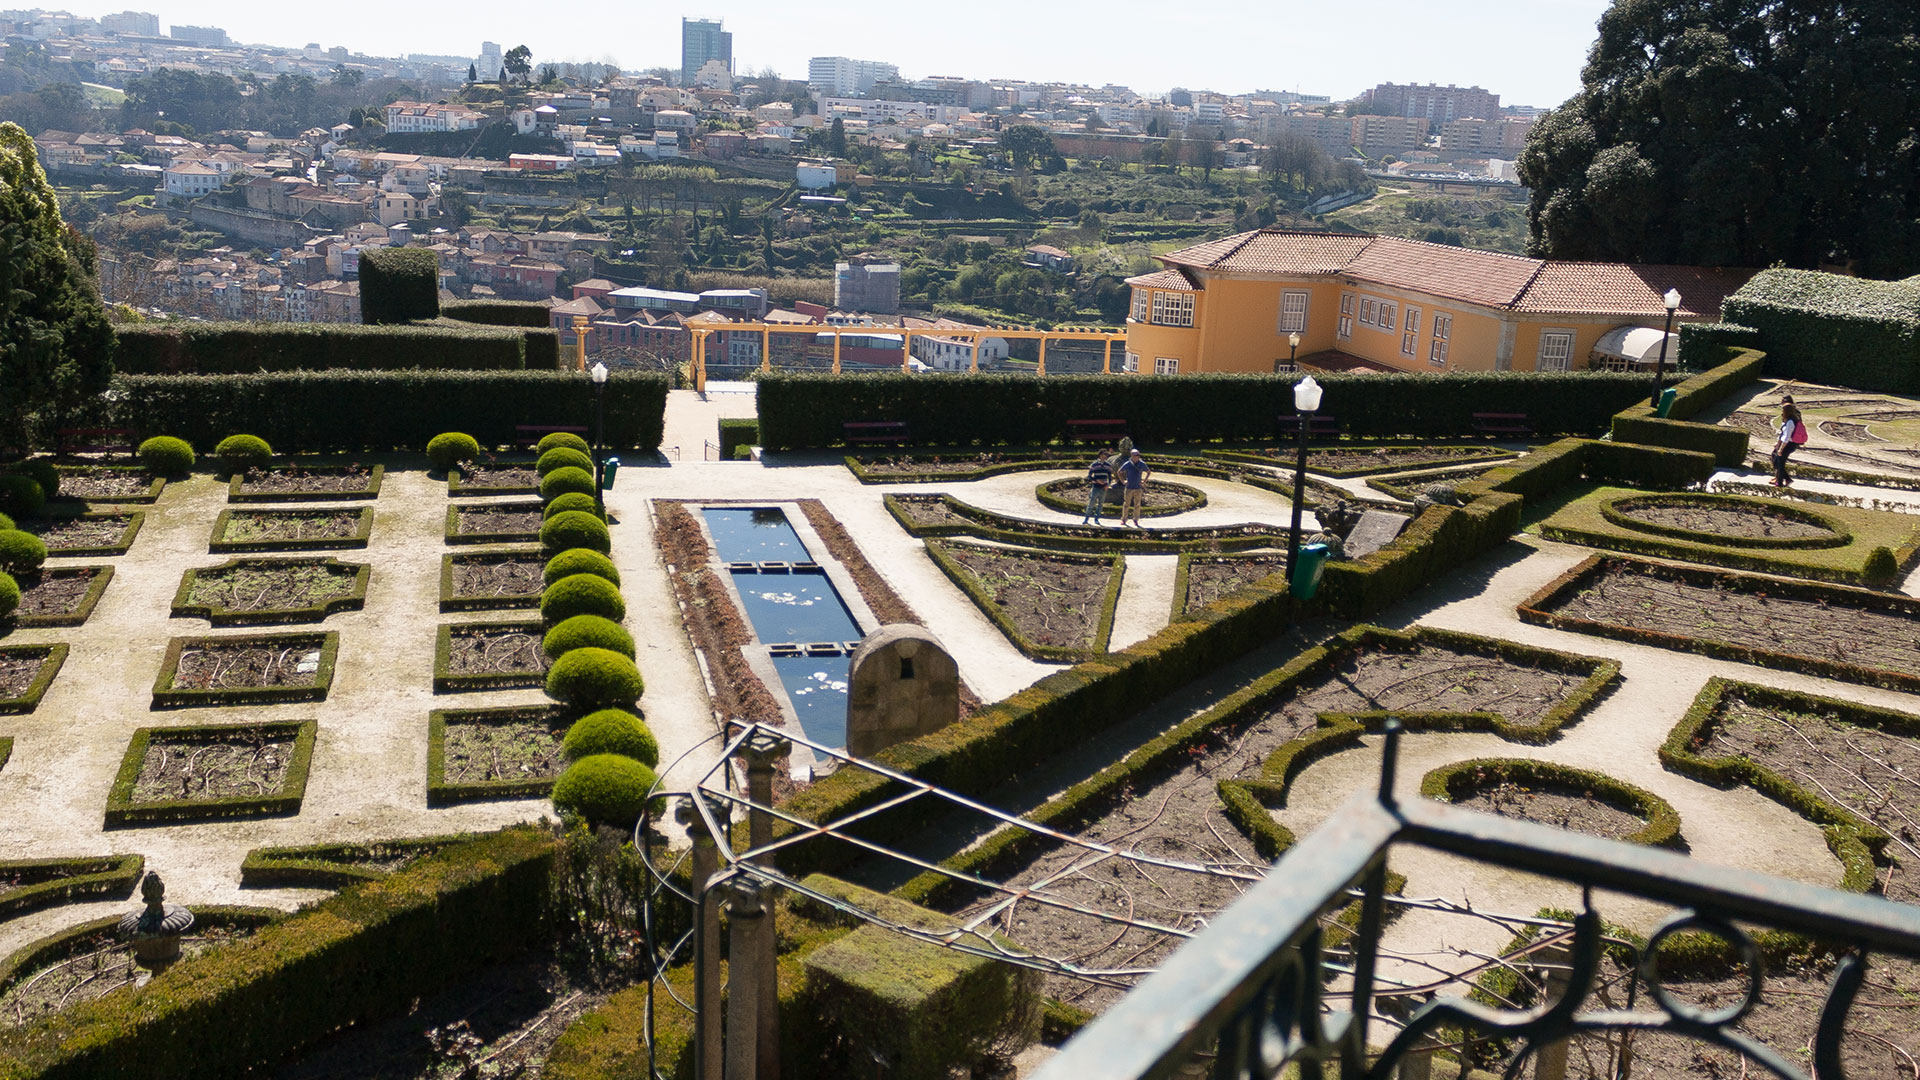 Gardens of Palácio de Cristal (Porto) | Off the map and off the plan in Porto.